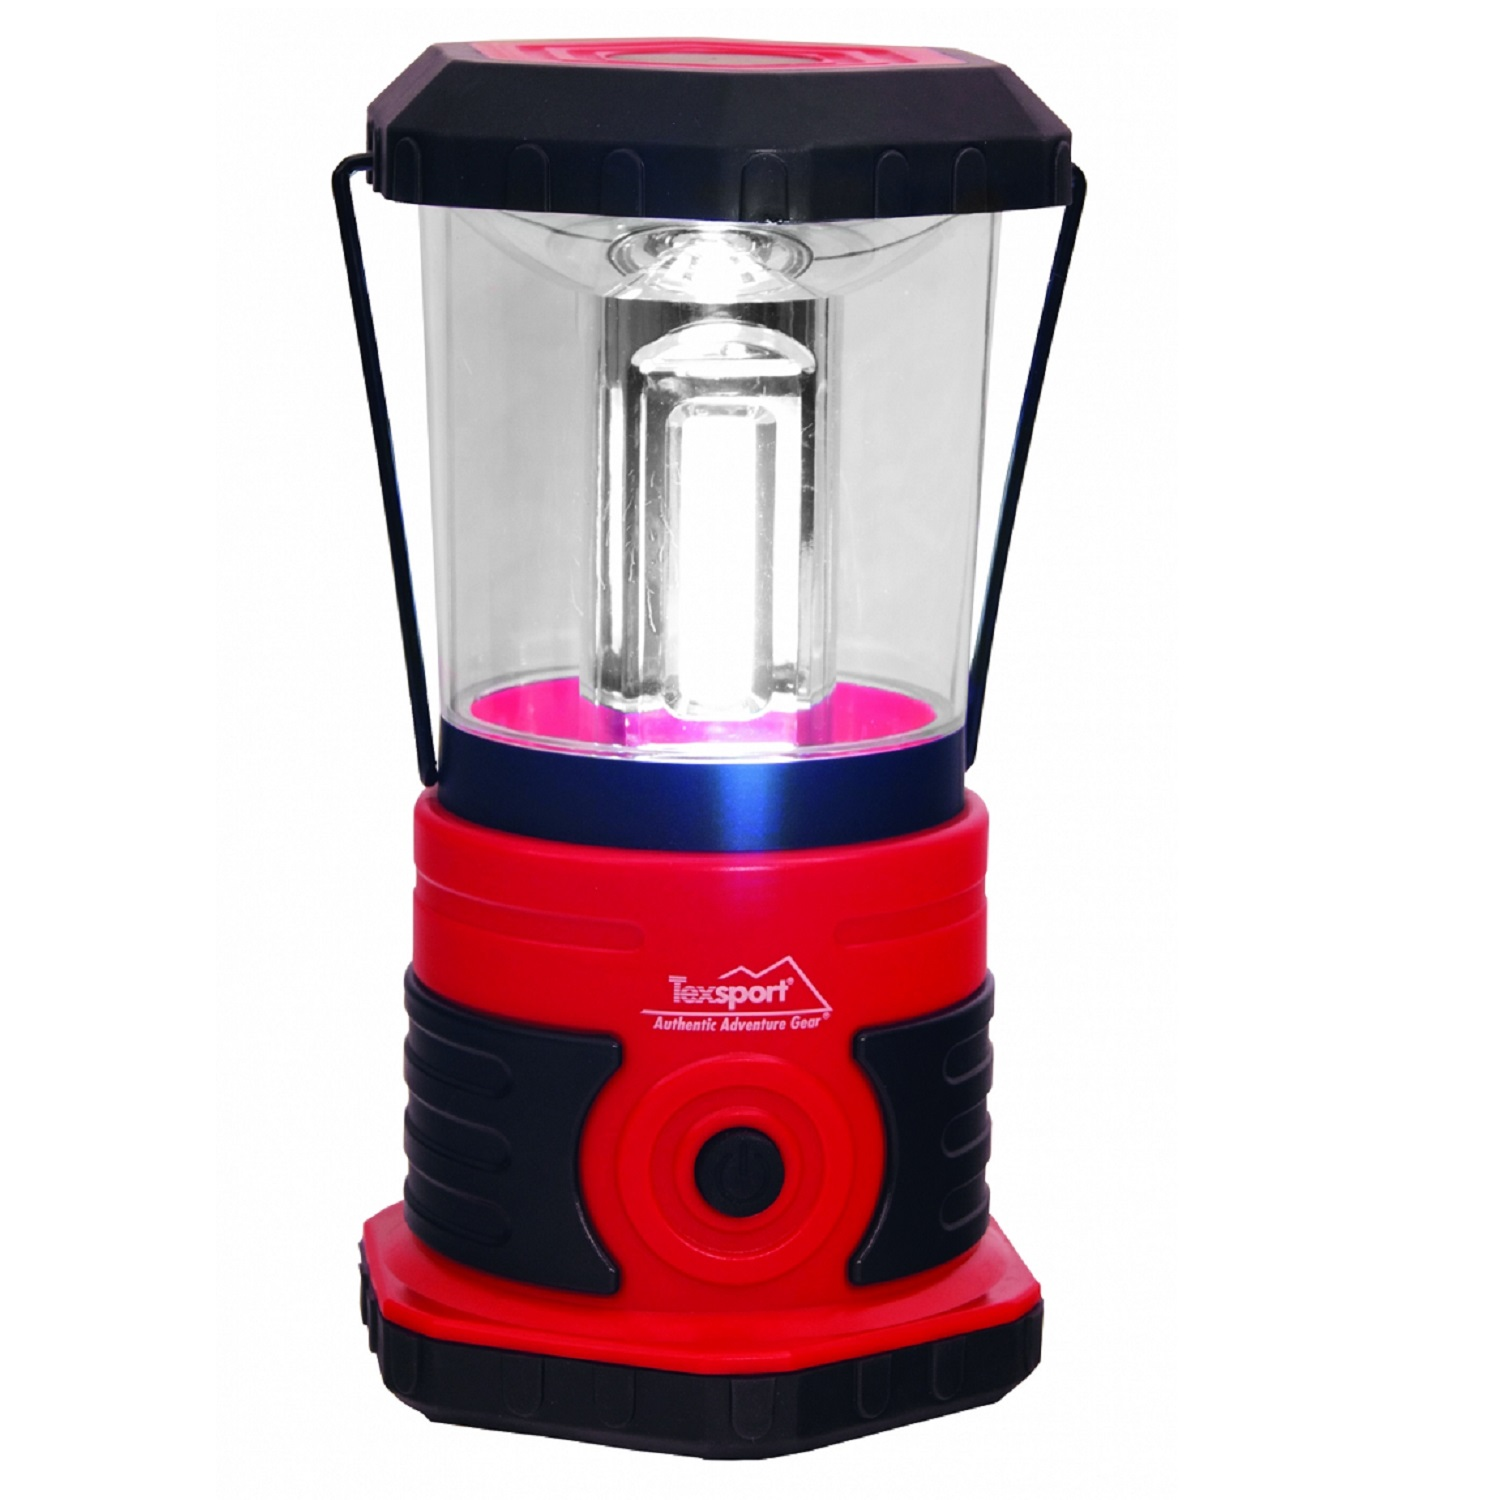 Texsport 600 Lumen LED Camp Lantern - Black/Red